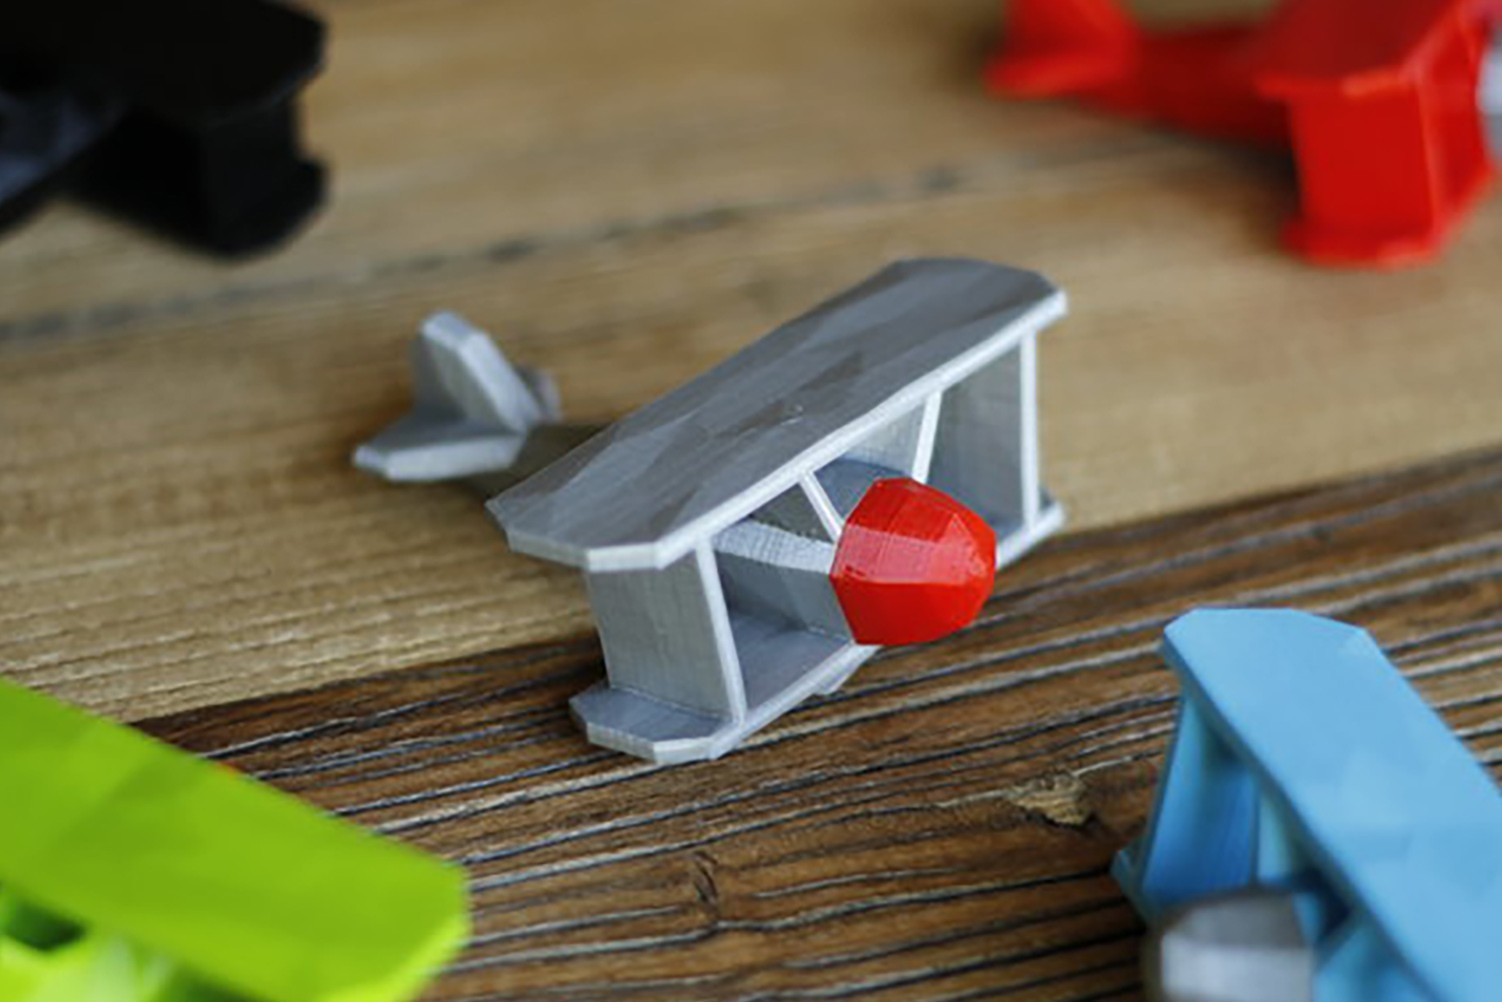 thingiverse_stoyries.jpg Download free STL file Stoyries - Low-Poly Plane • Template to 3D print, flowalistik